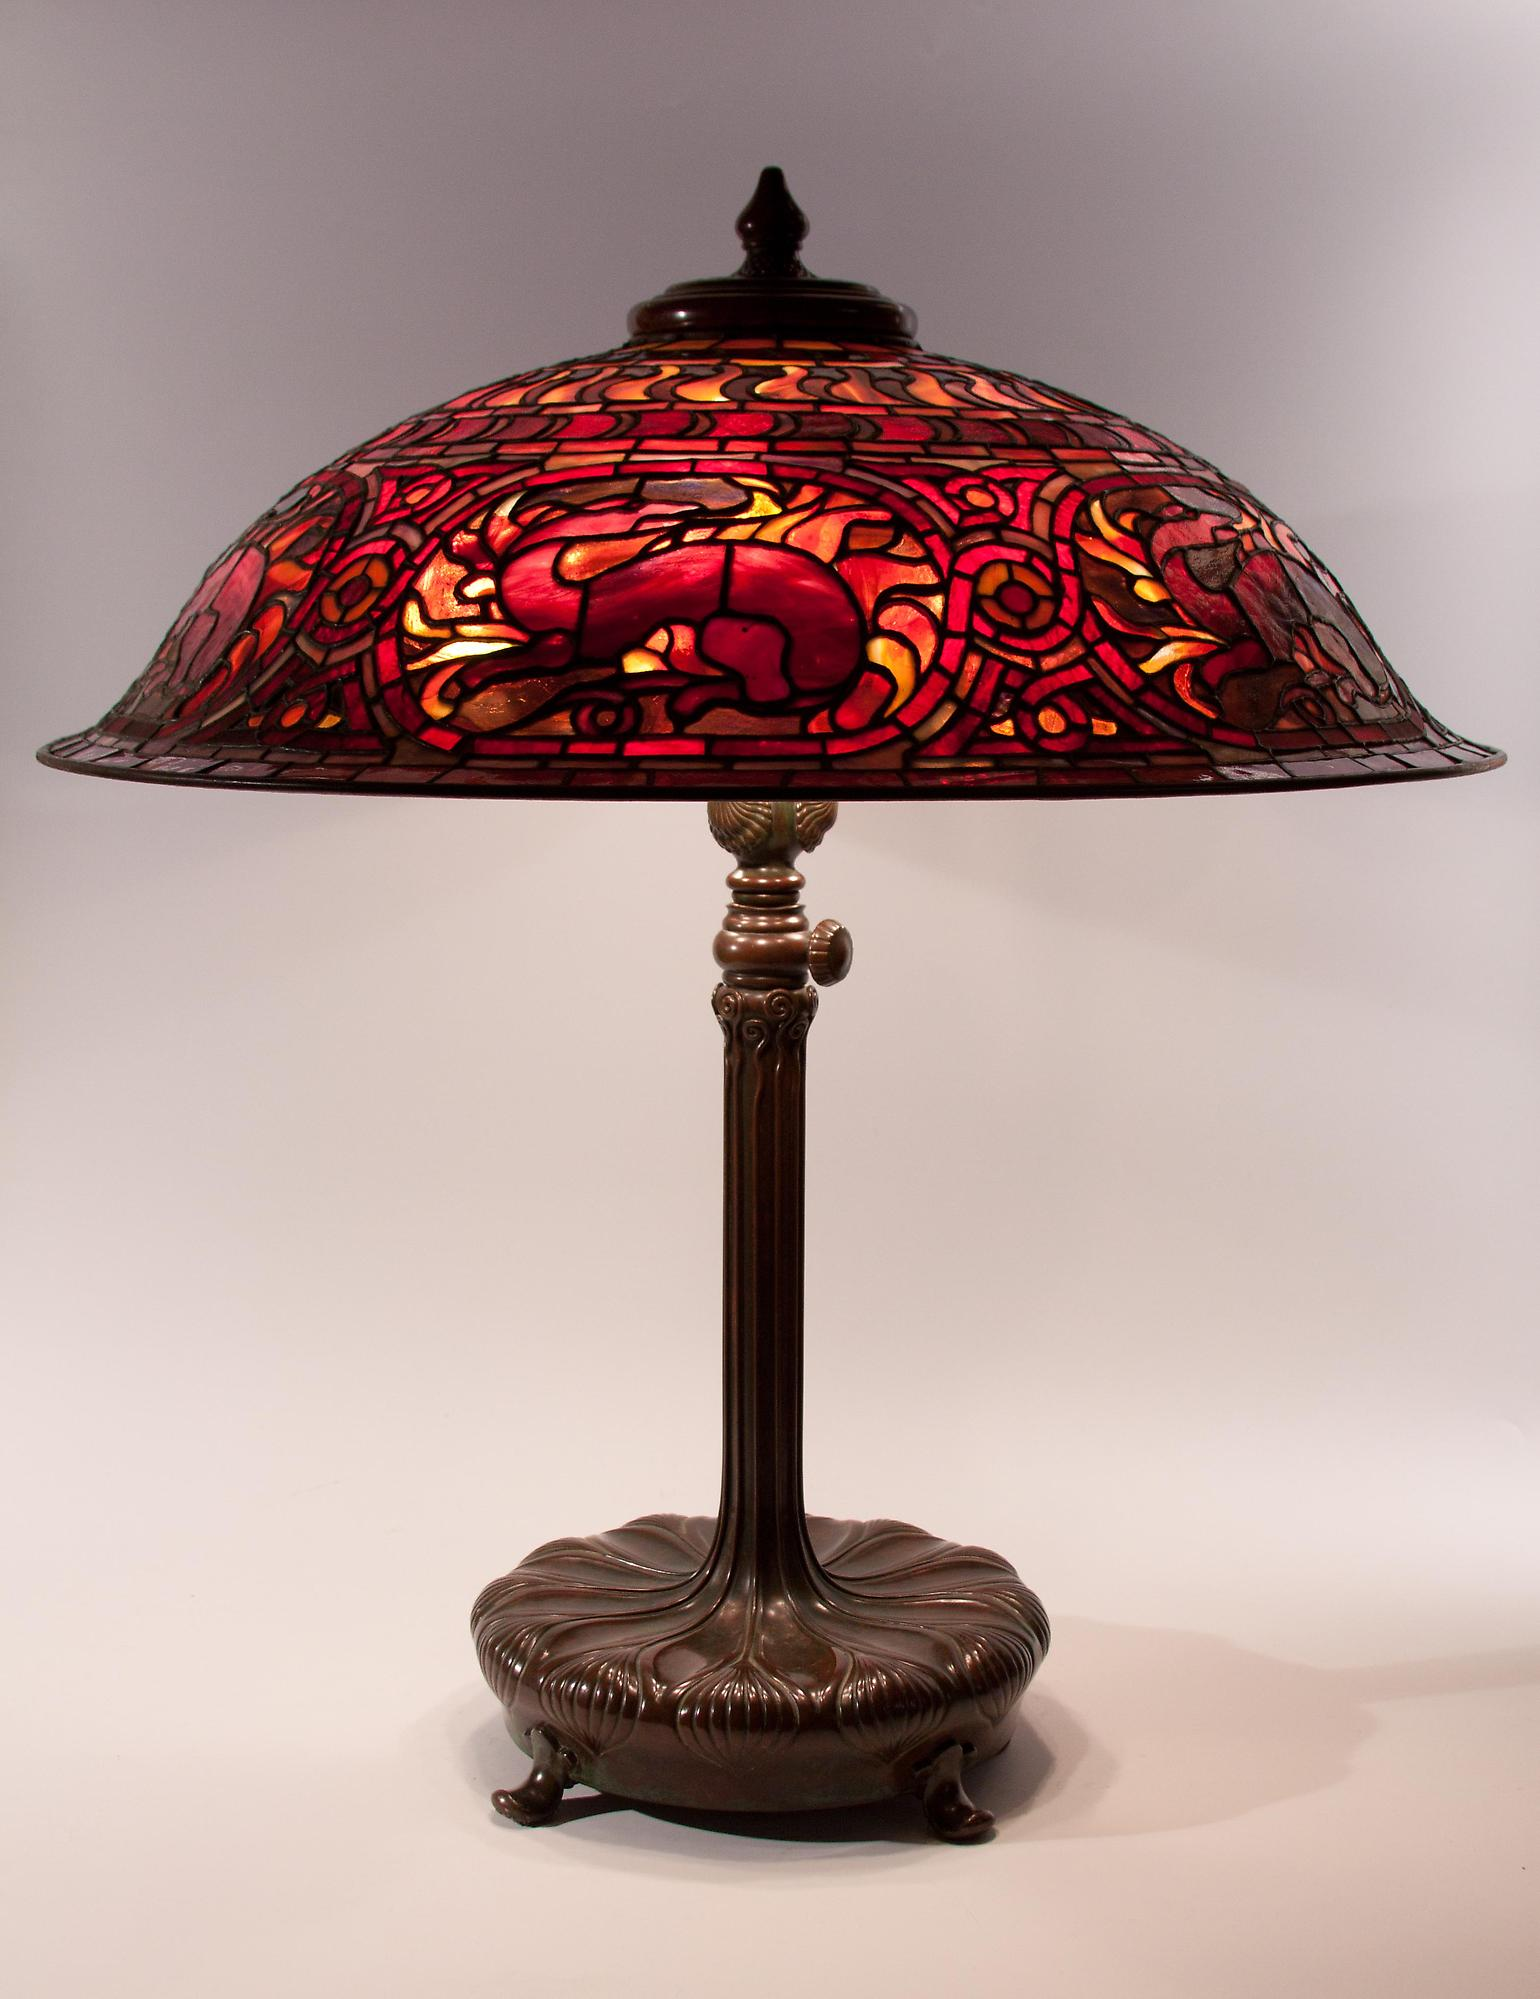 How to Value an Antique Lamps